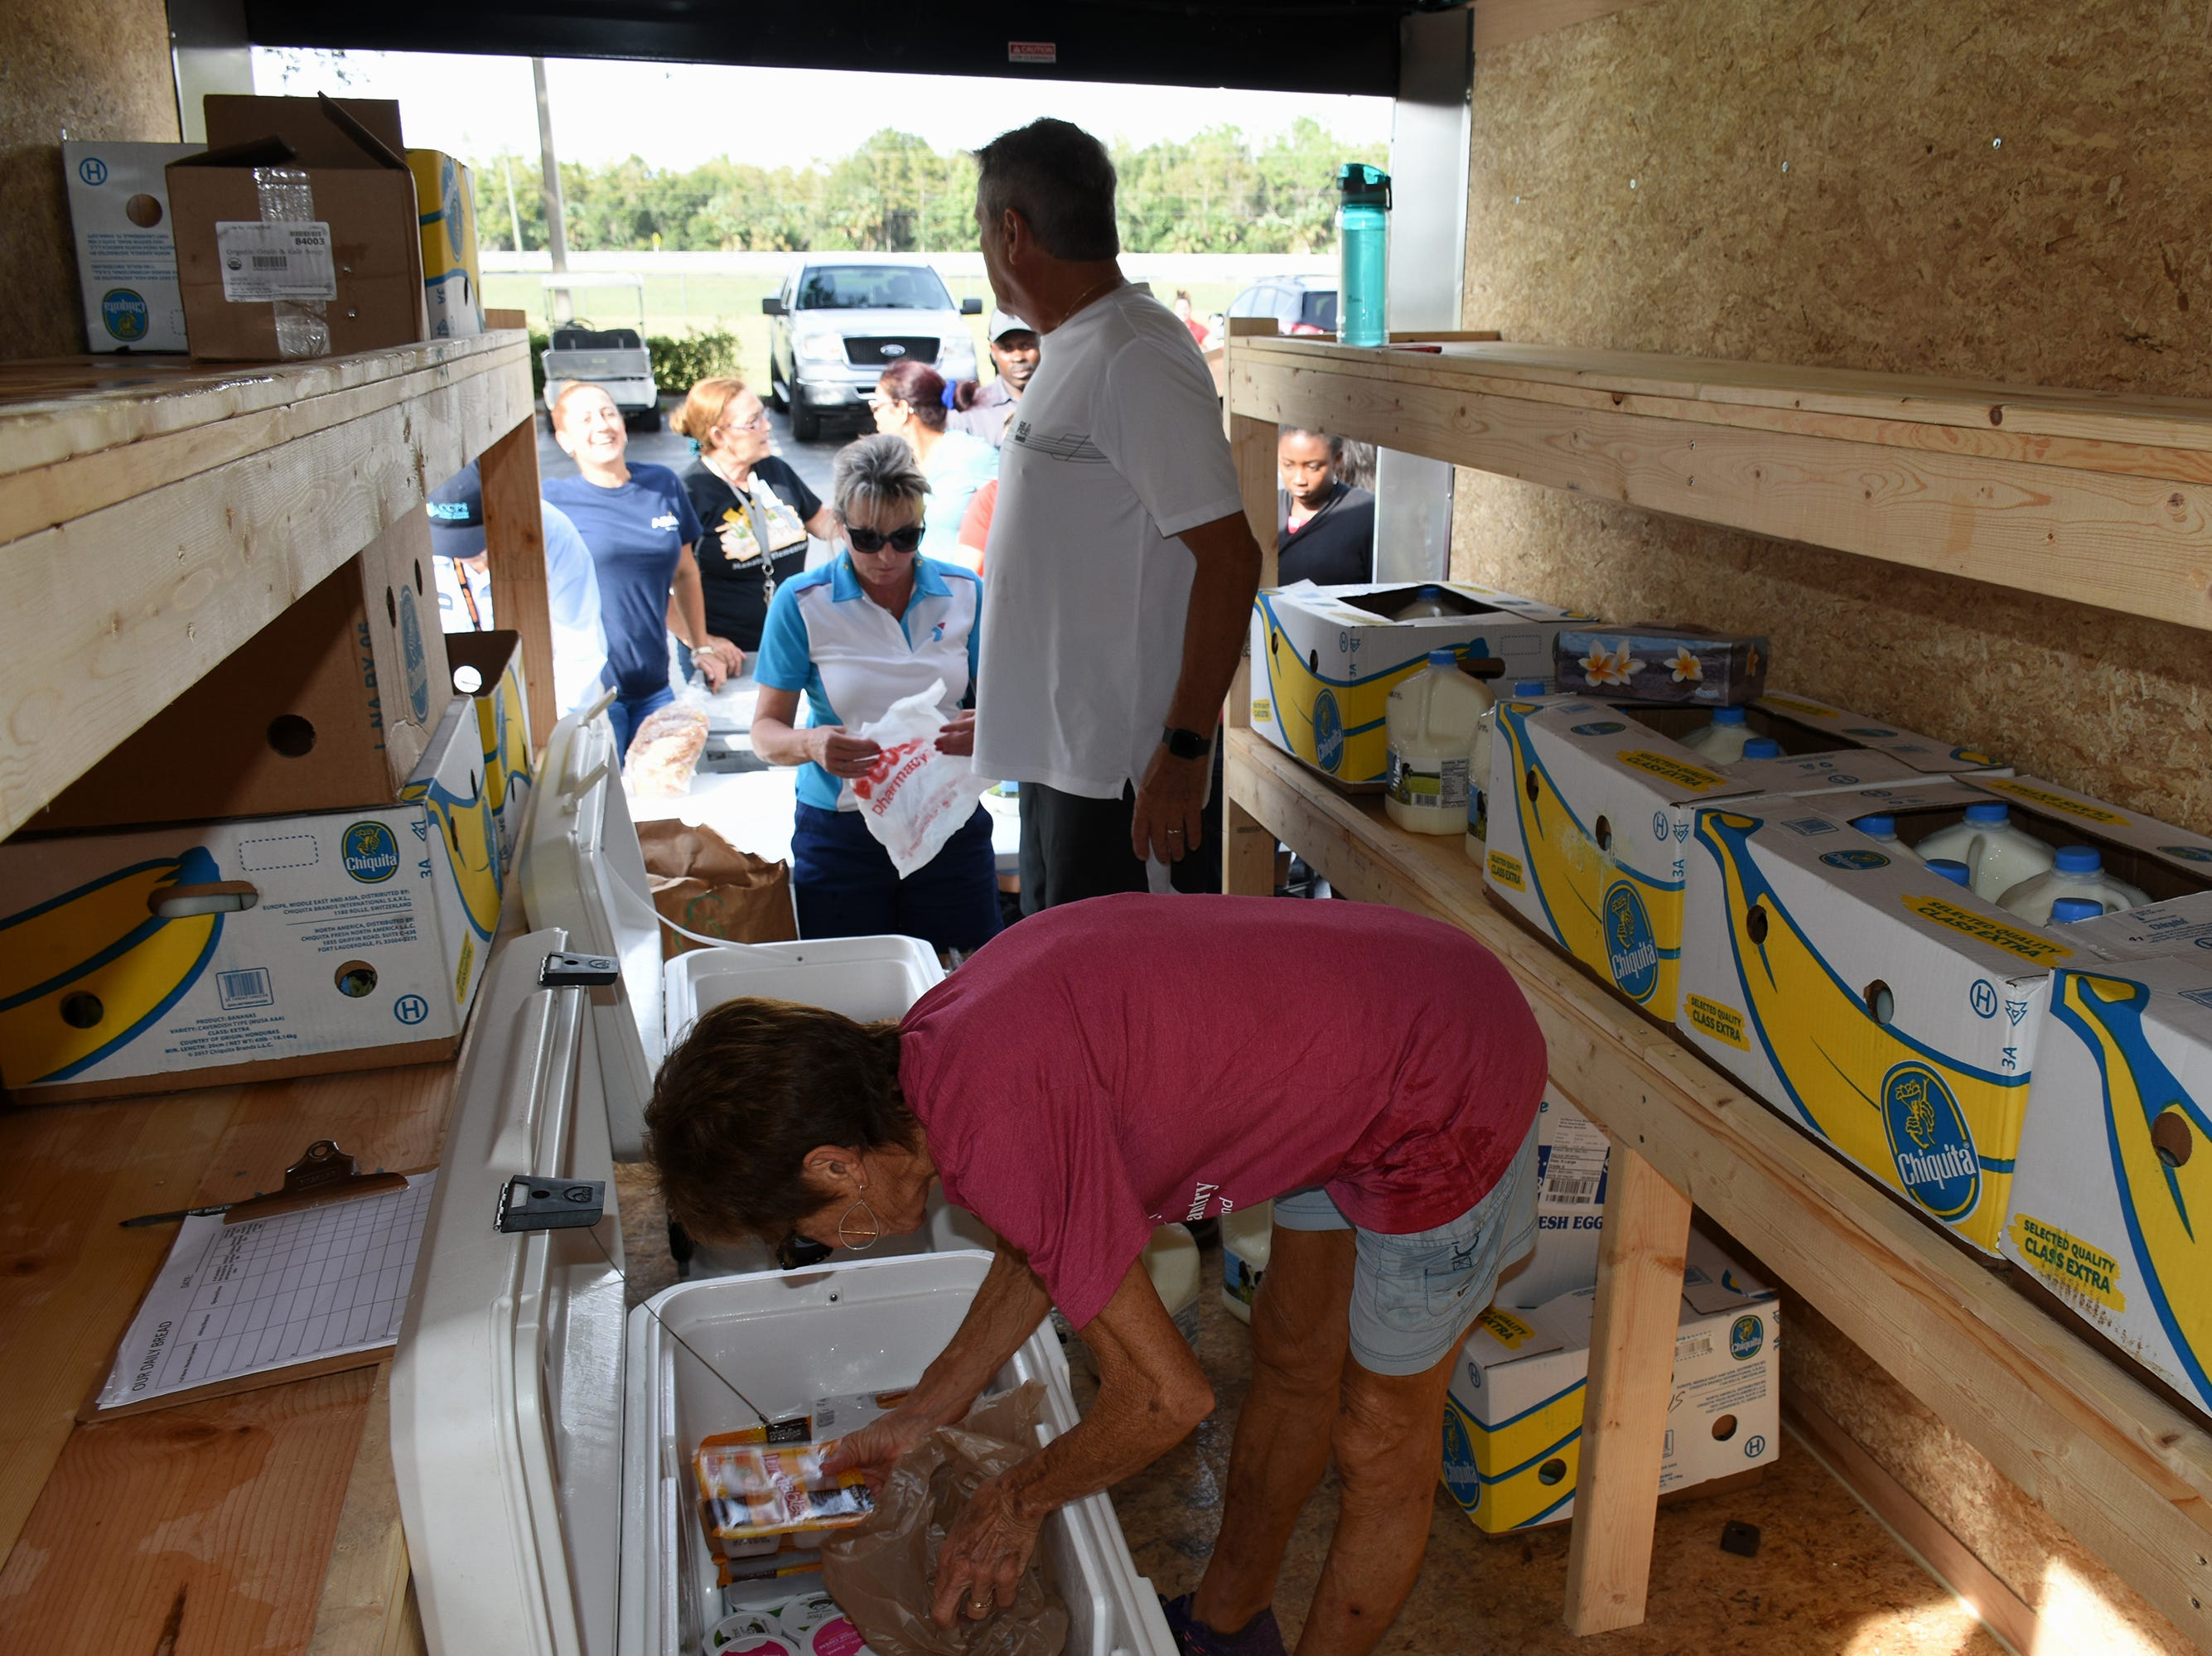 Tricia Simmler pulls more supplies out of the food pantry trailer. A group of Marco Island volunteers conducts a food pantry Friday afternoon at Manatee Middle School.